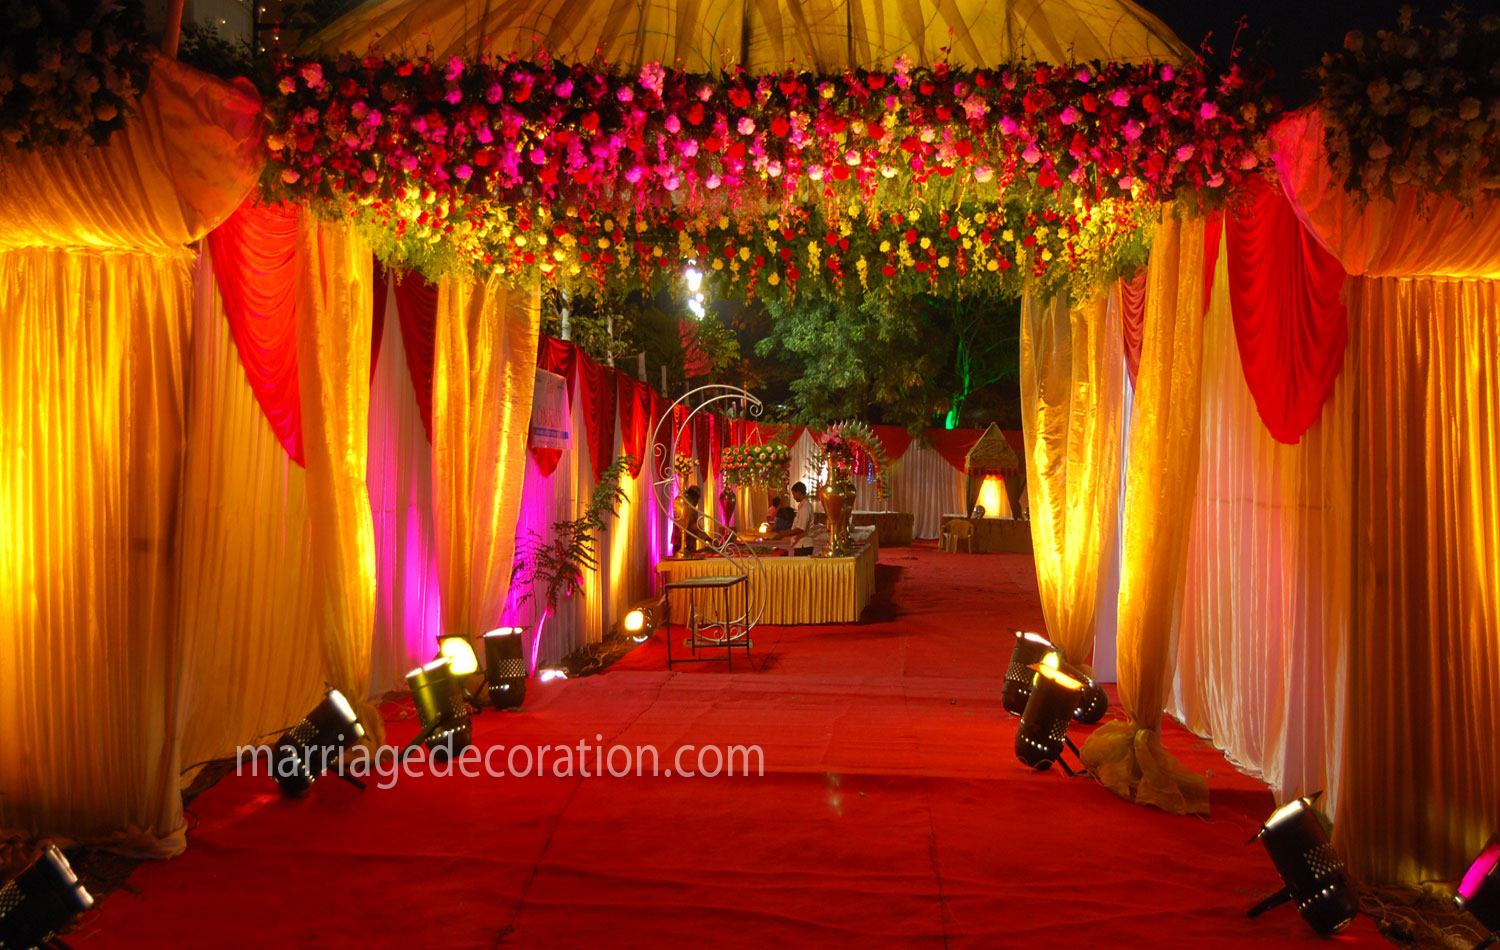 Wedding decorators romantic decoration for Decoration or